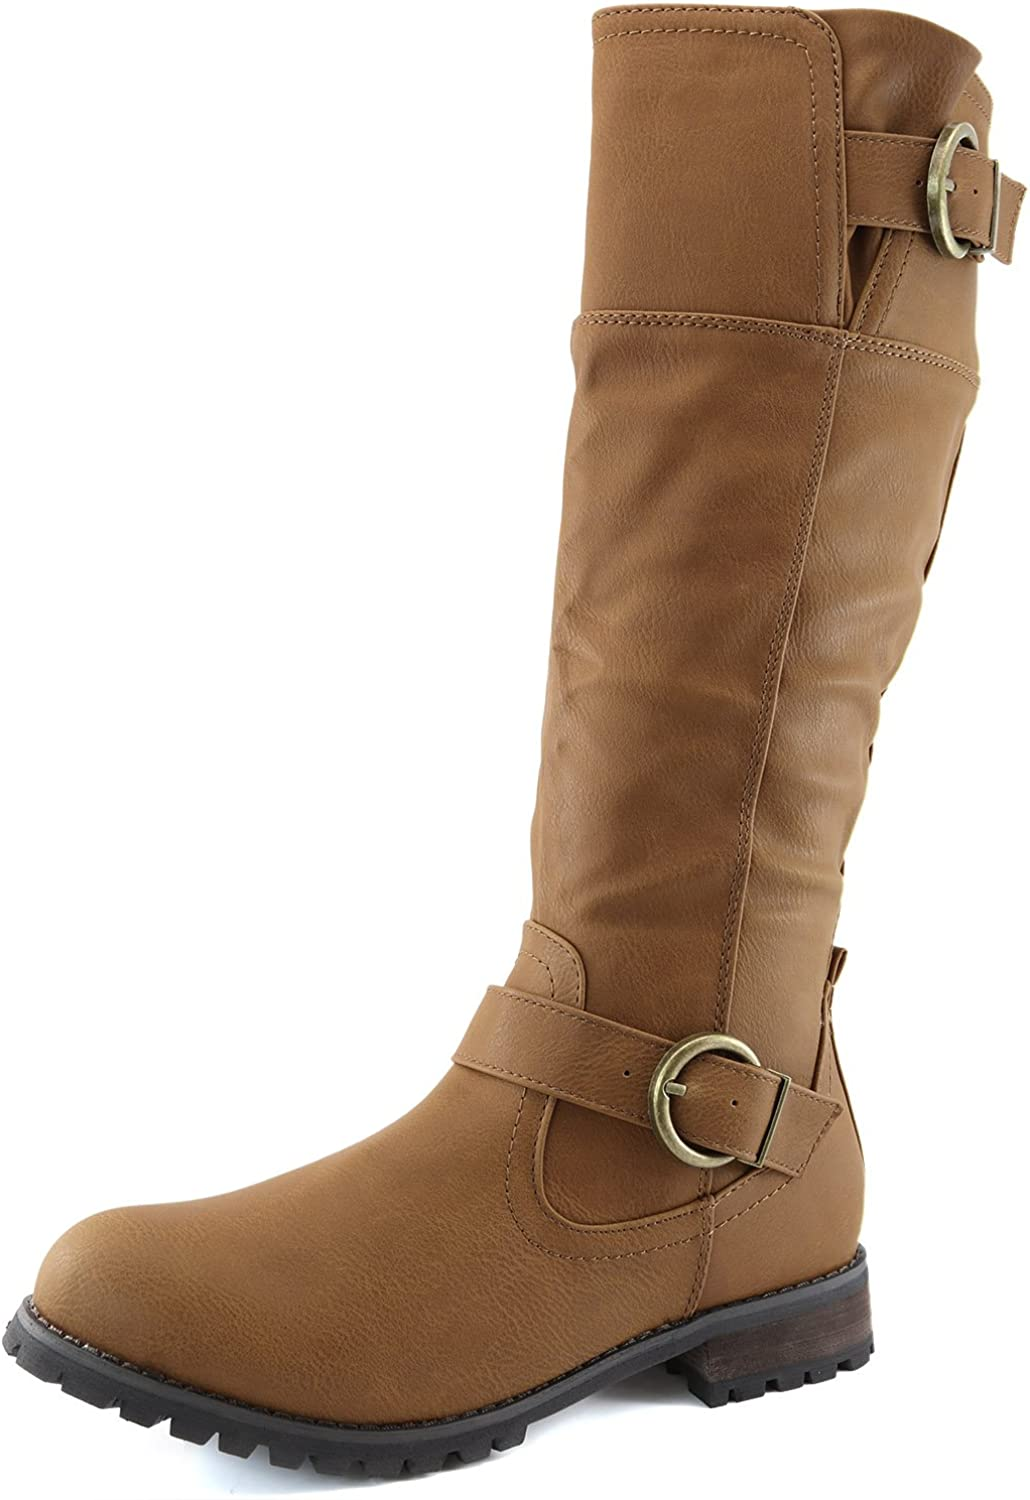 DailyShoes Women's Double Buckle Military Combat Boots Side Zipper Fashion Shoes